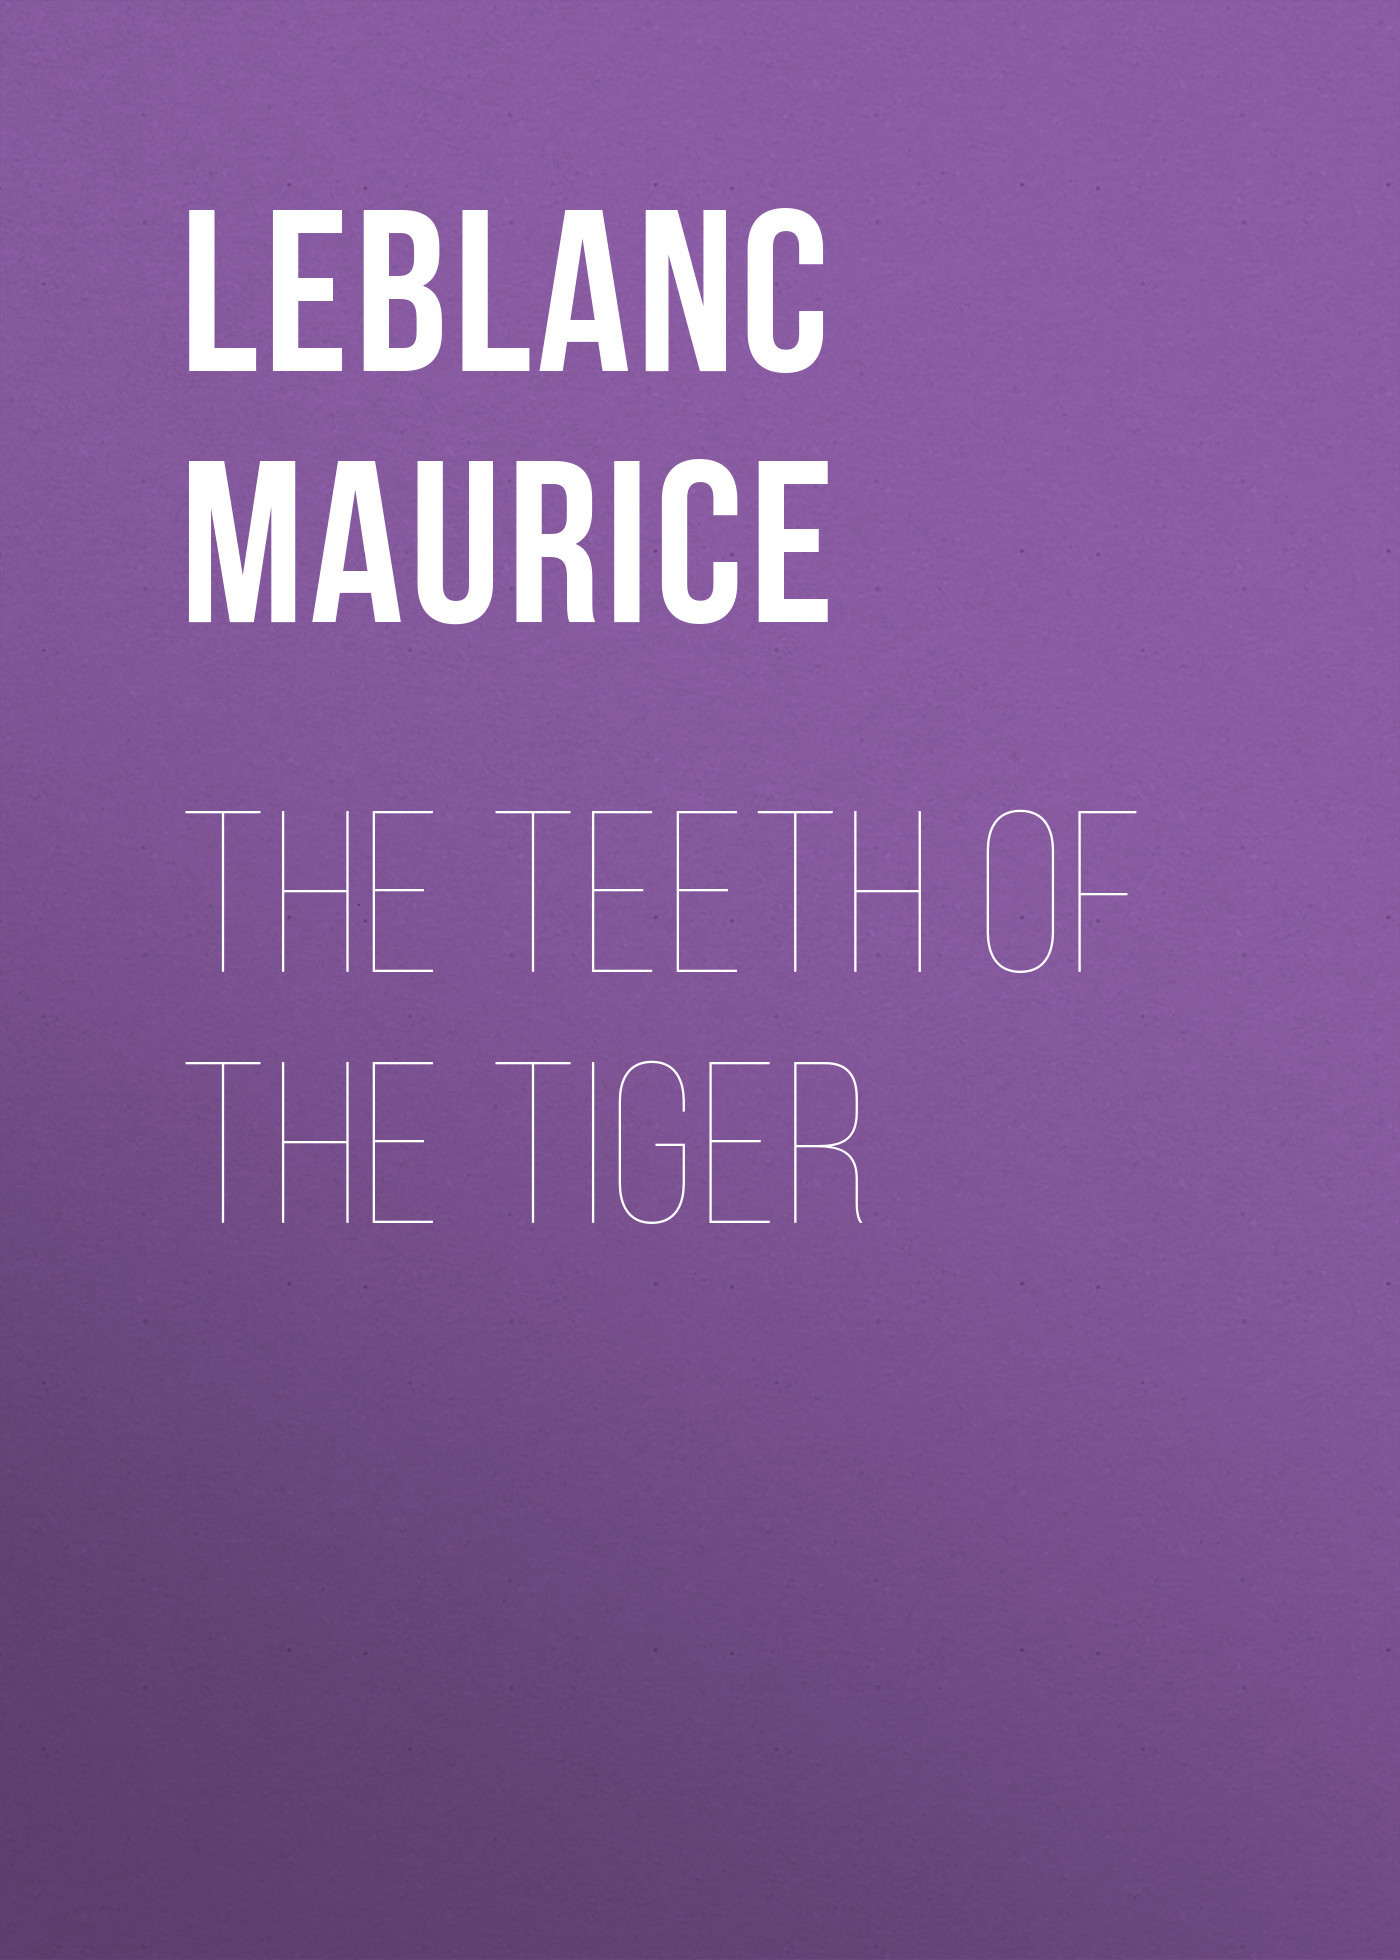 Leblanc Maurice The Teeth of the Tiger new arrival dental all teeth removable standard teeth tooth model 28 pcs teeth student learning model